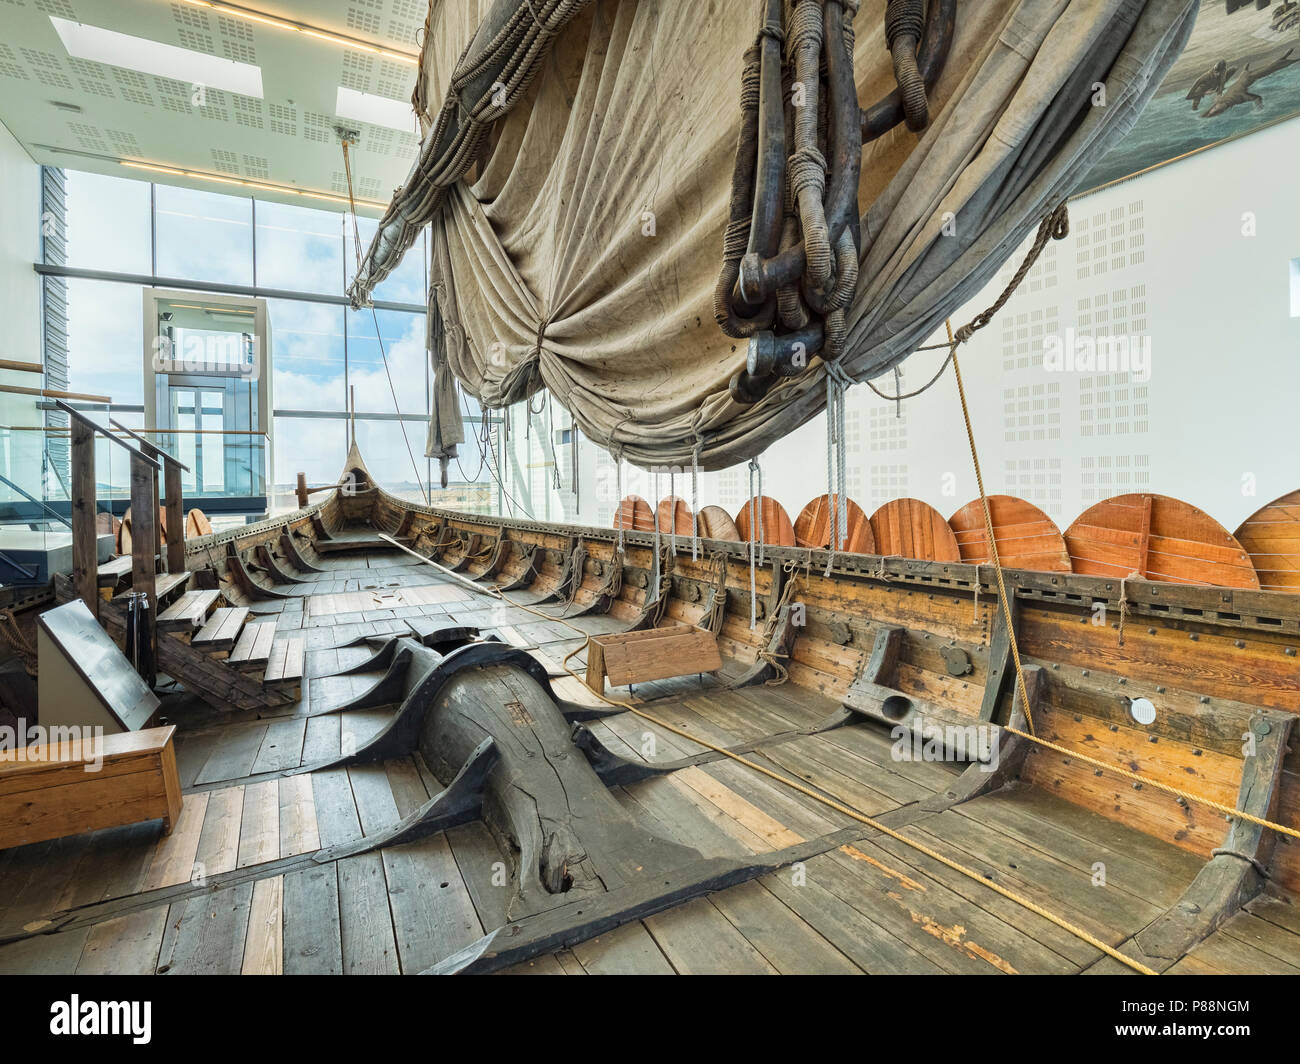 18 April 2018: Keflavik, Iceland - On board the Islendingur, a replica of the Gokstad Viking Ship at Viking World museum. - Stock Image